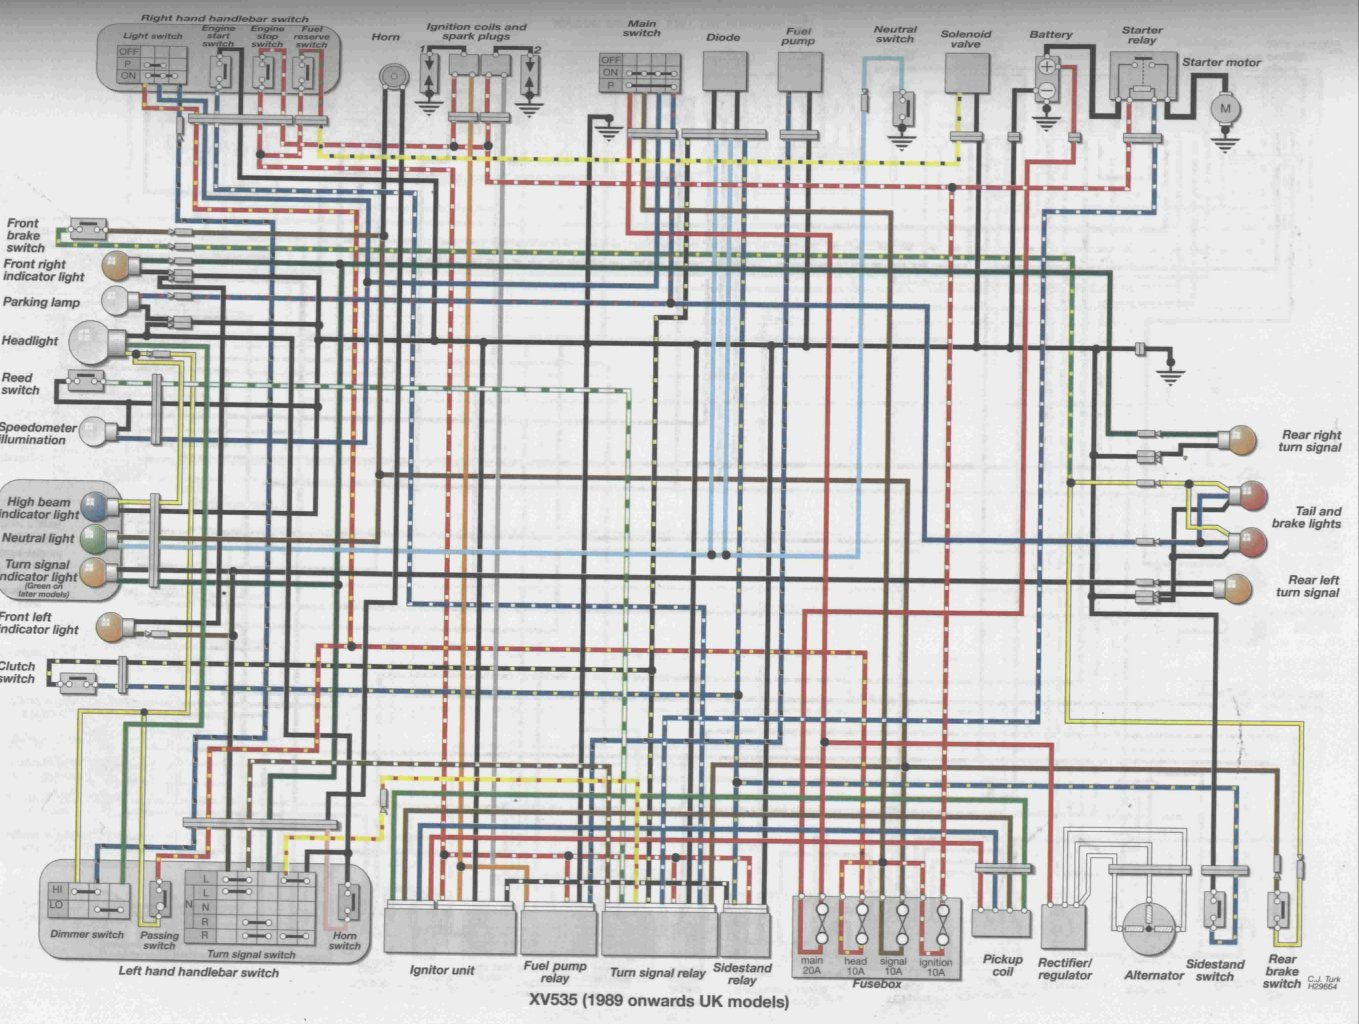 ... supermach 700 wiring diagram electrical work wiring diagram \u2022 hisun  700 wiring diagram hisun 700